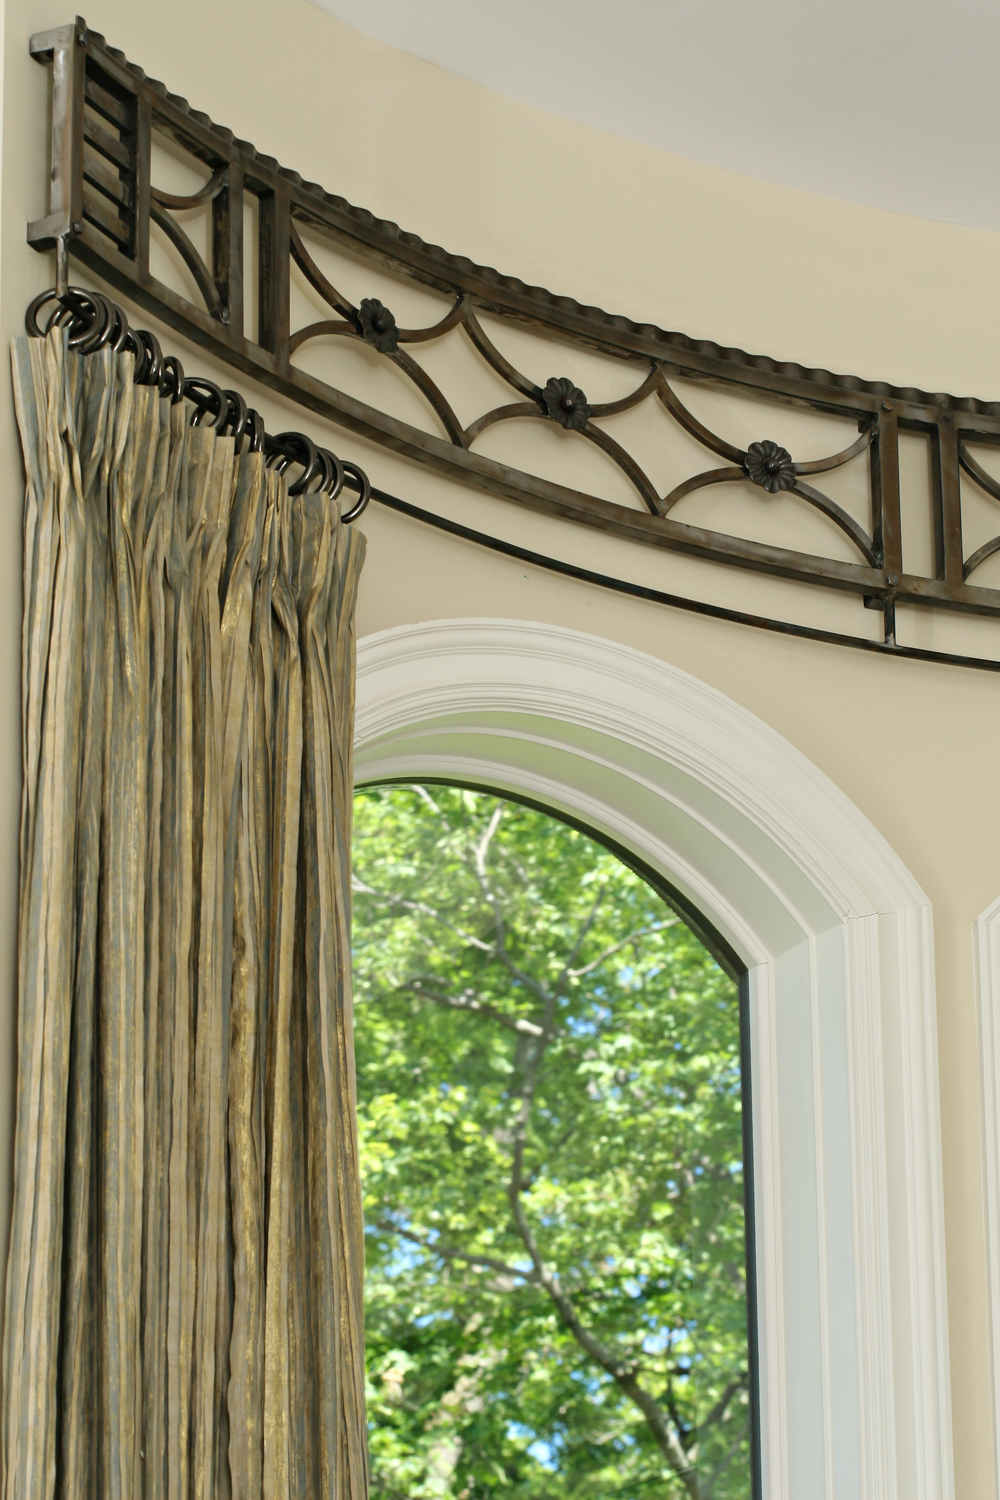 Arched Window Treatments There Are Good Ideas Here